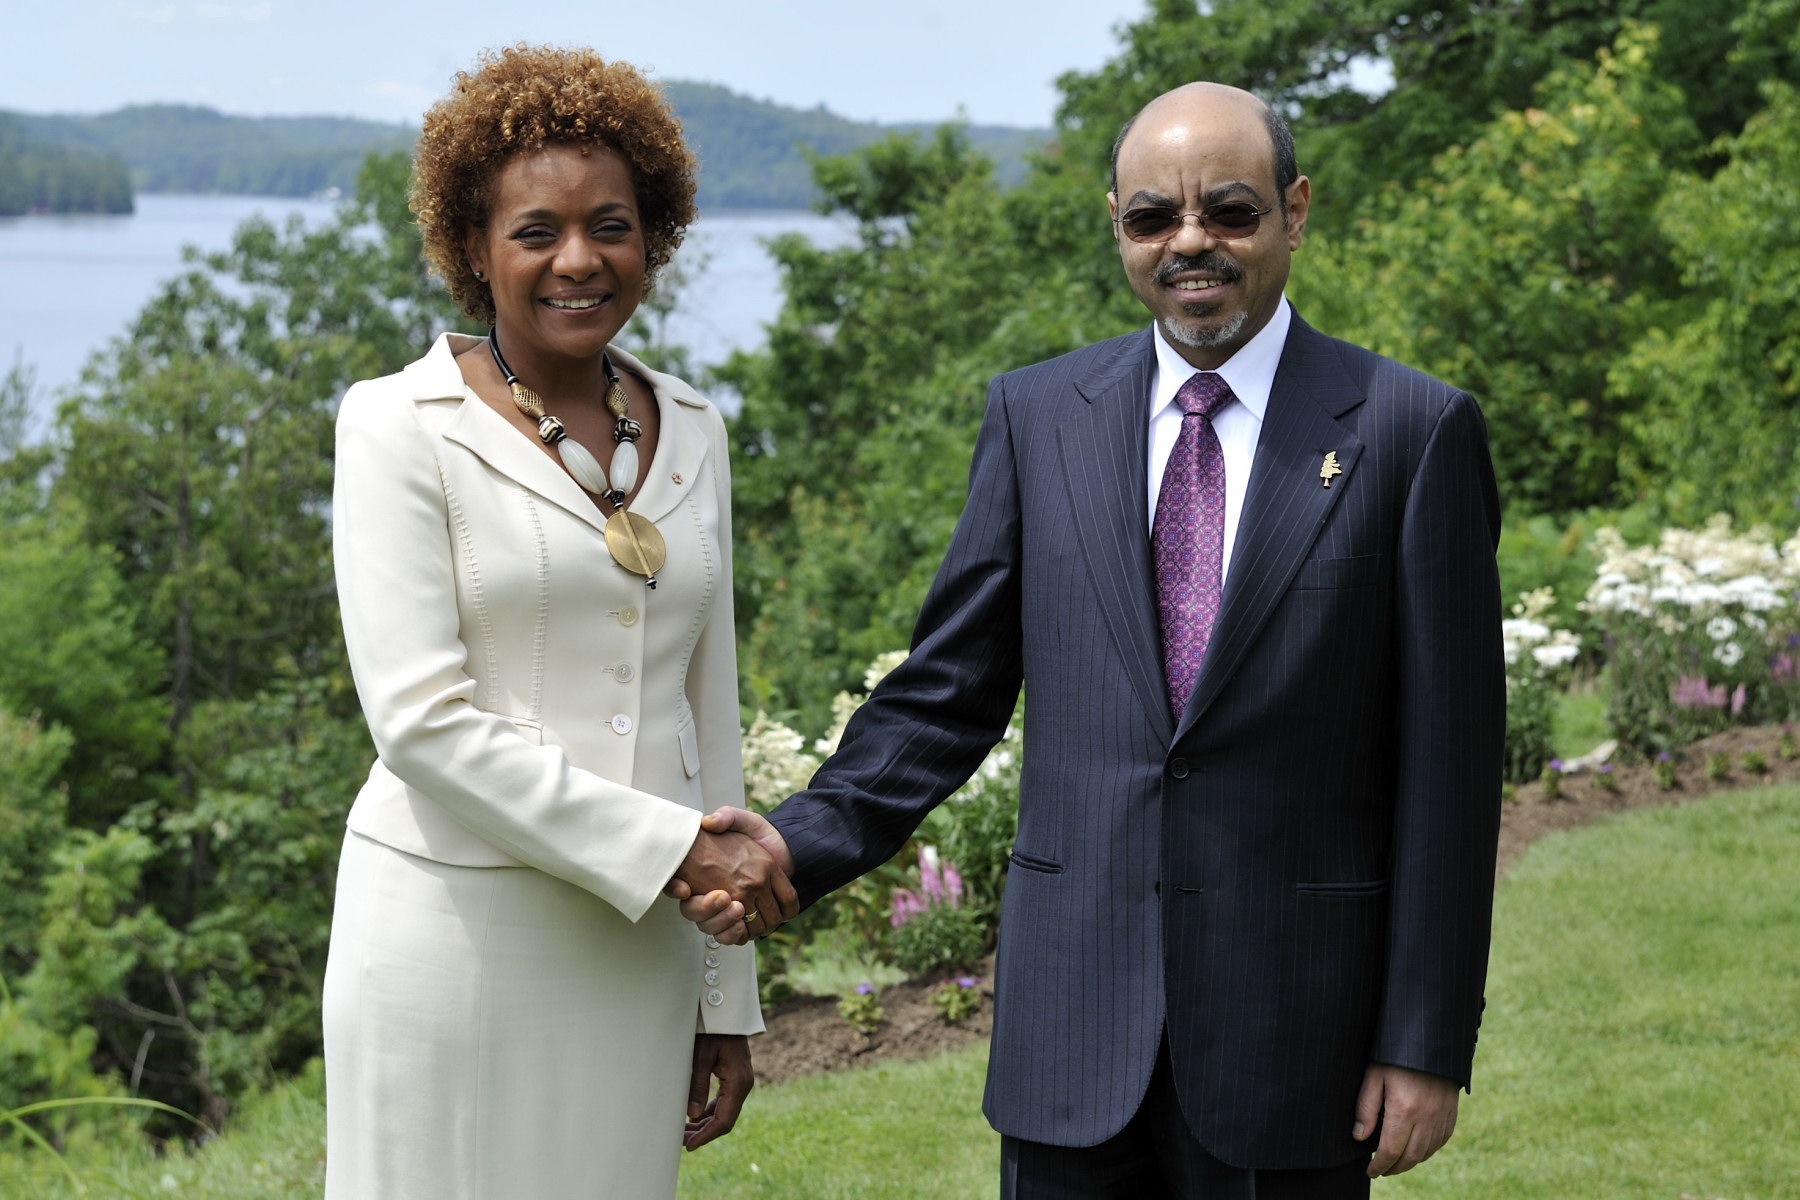 His Excellency Ato Meles Zanawi, Prime Minister of the Federal Democratic Republic of Ethiopia and Chair of the New Partnership for Africa's Development (NEPAD).